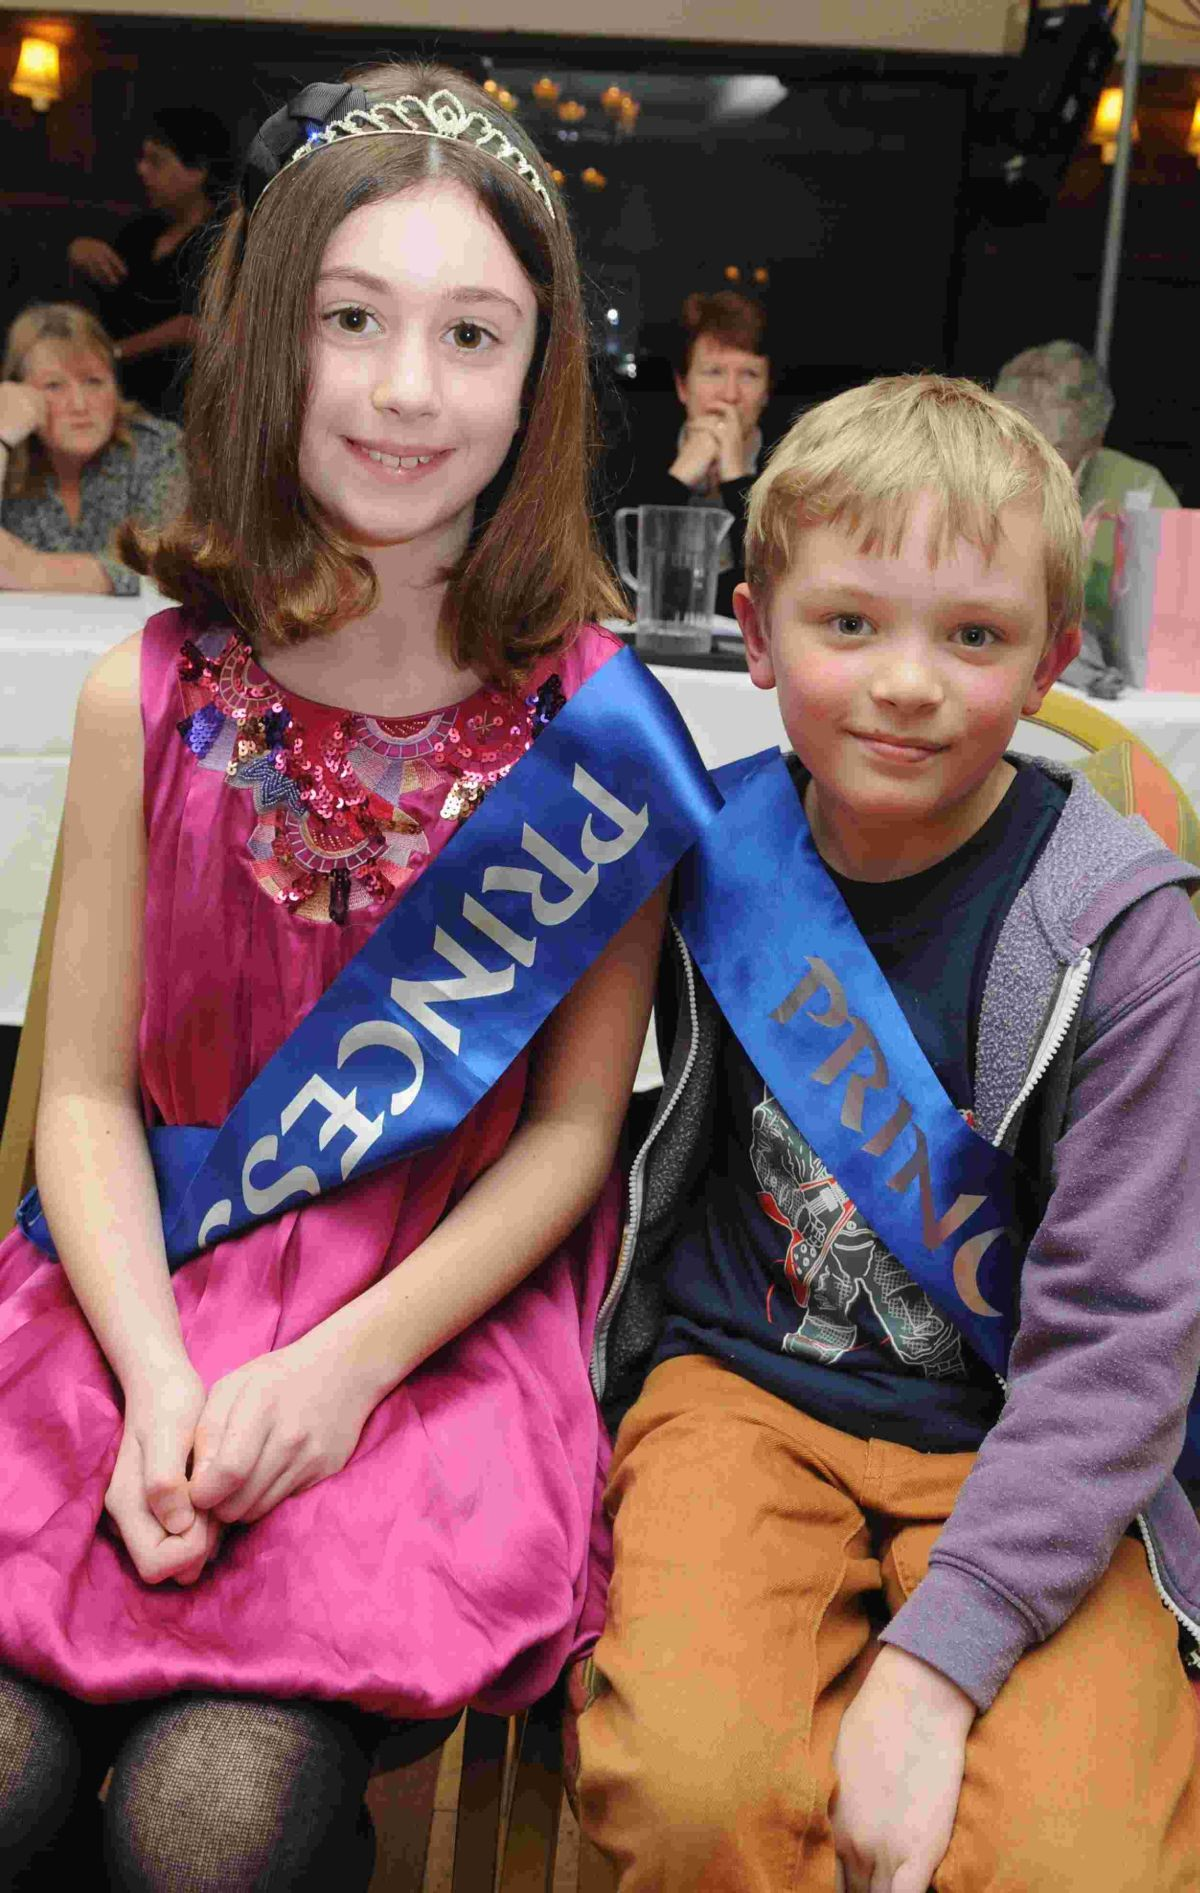 Search begins again for town's carnival royalty